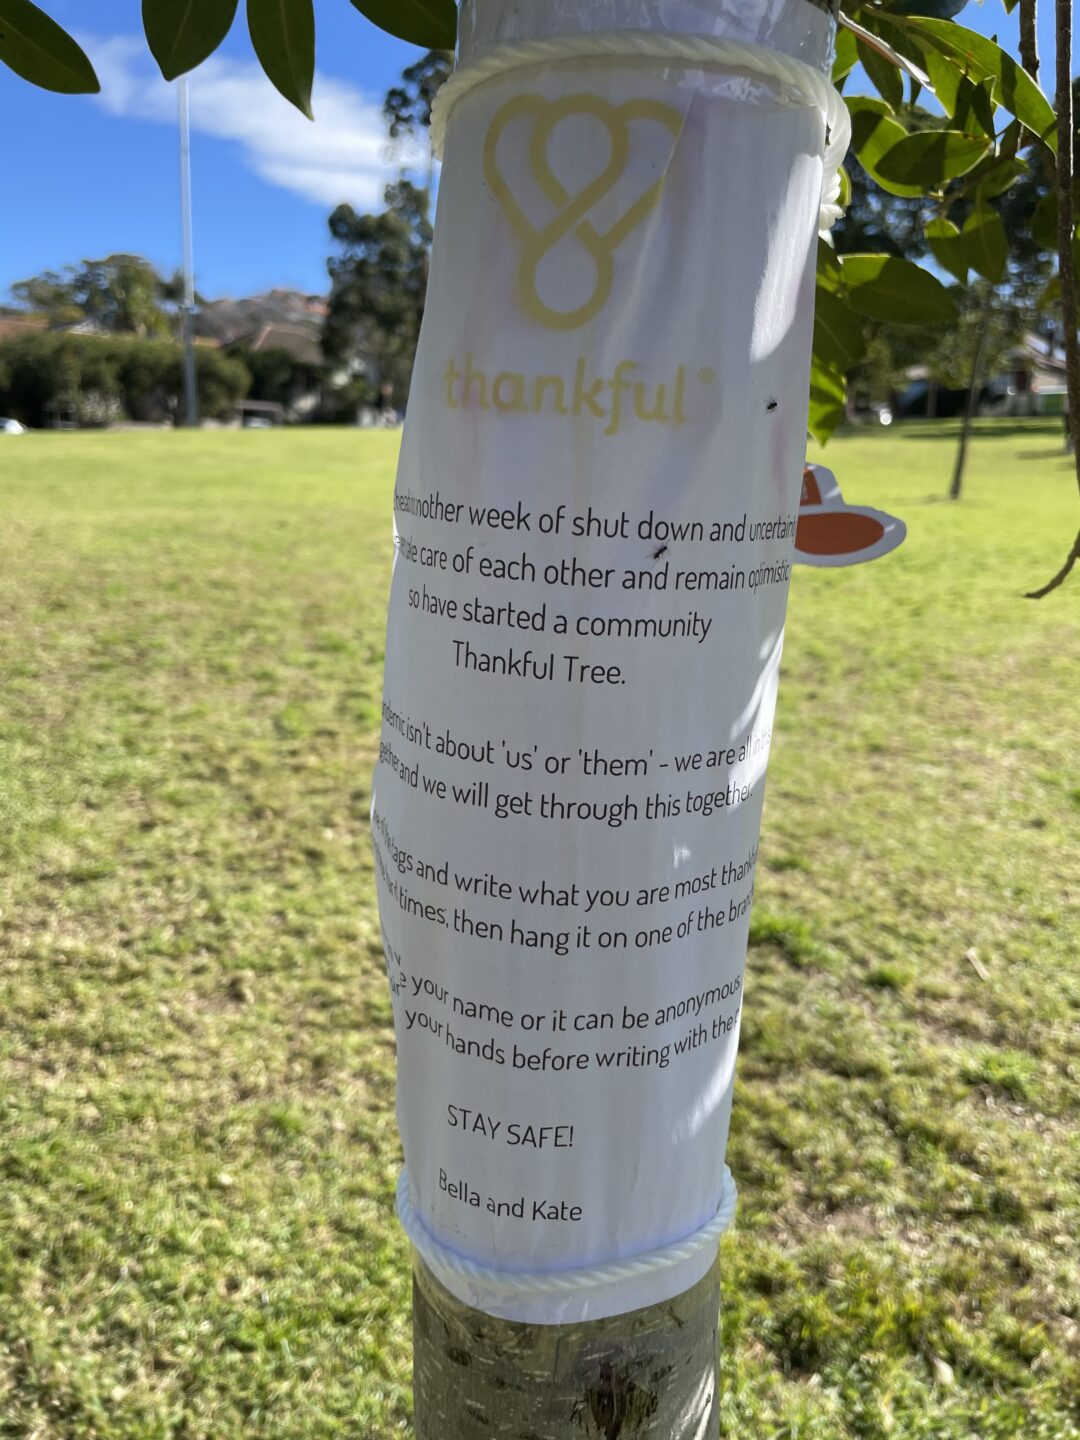 Poster wrapped around thankful tree.